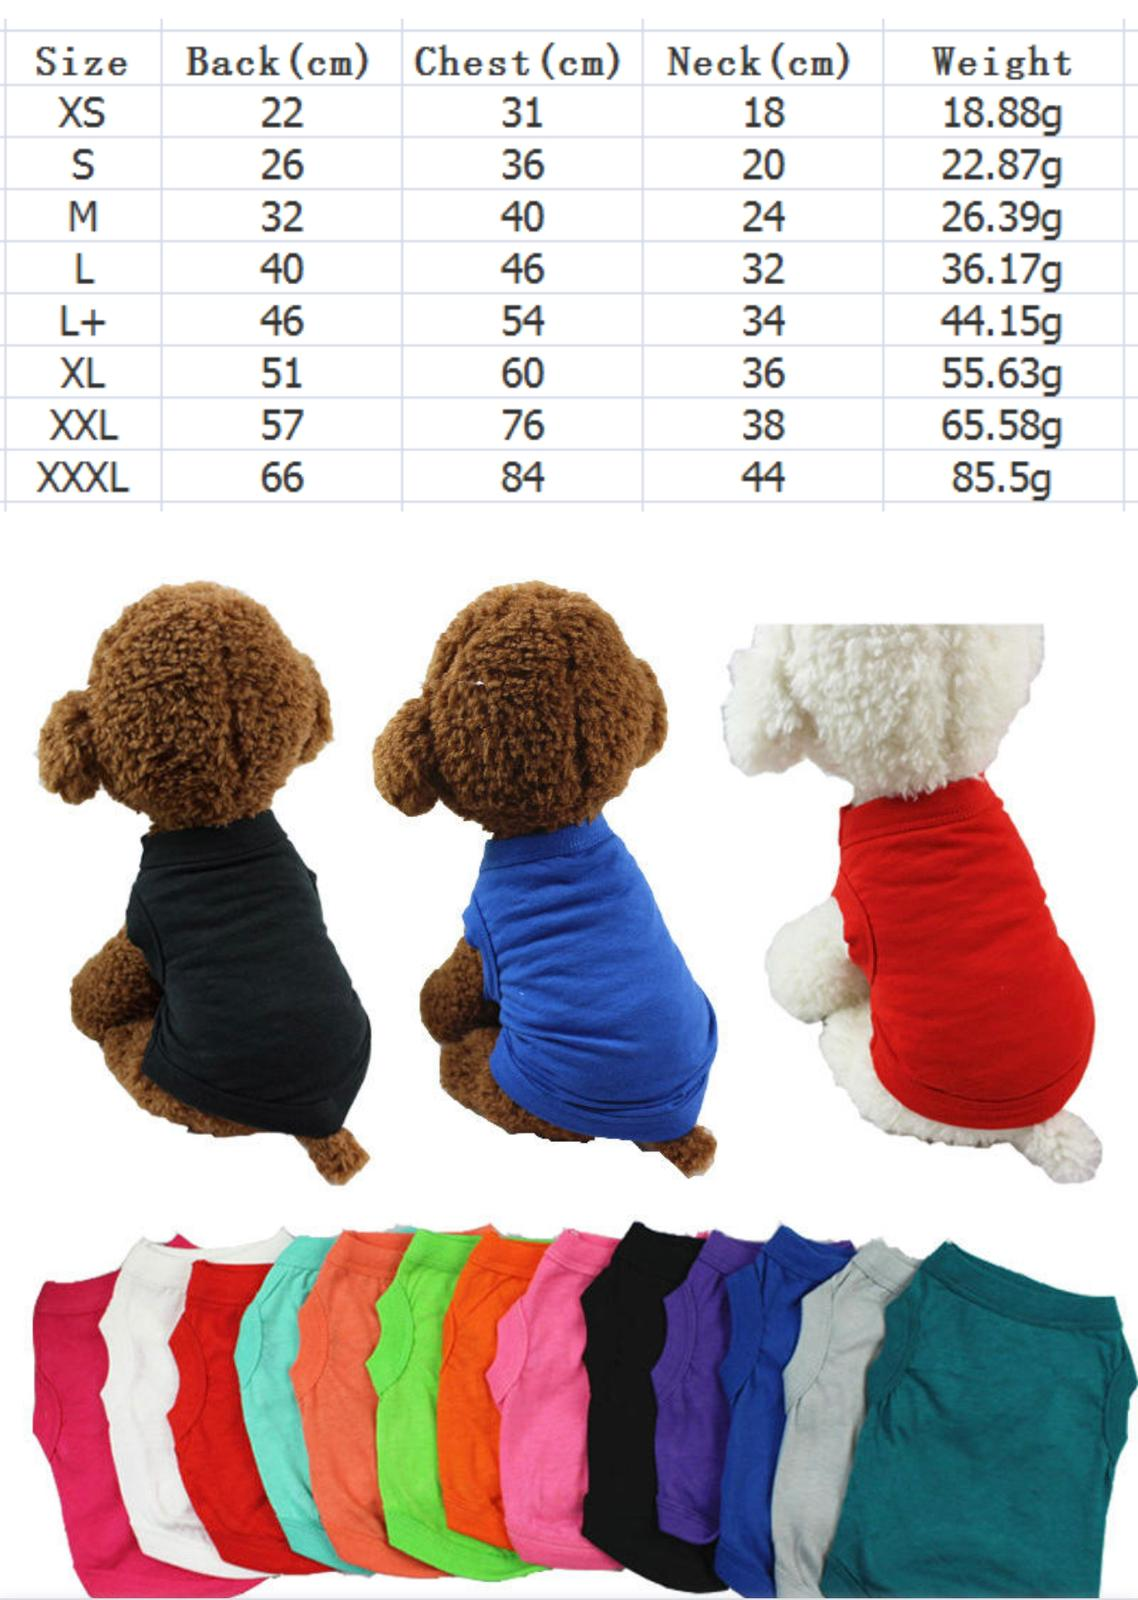 Plain Green T- Shirt Large - Dogs Apparel & Accessories product